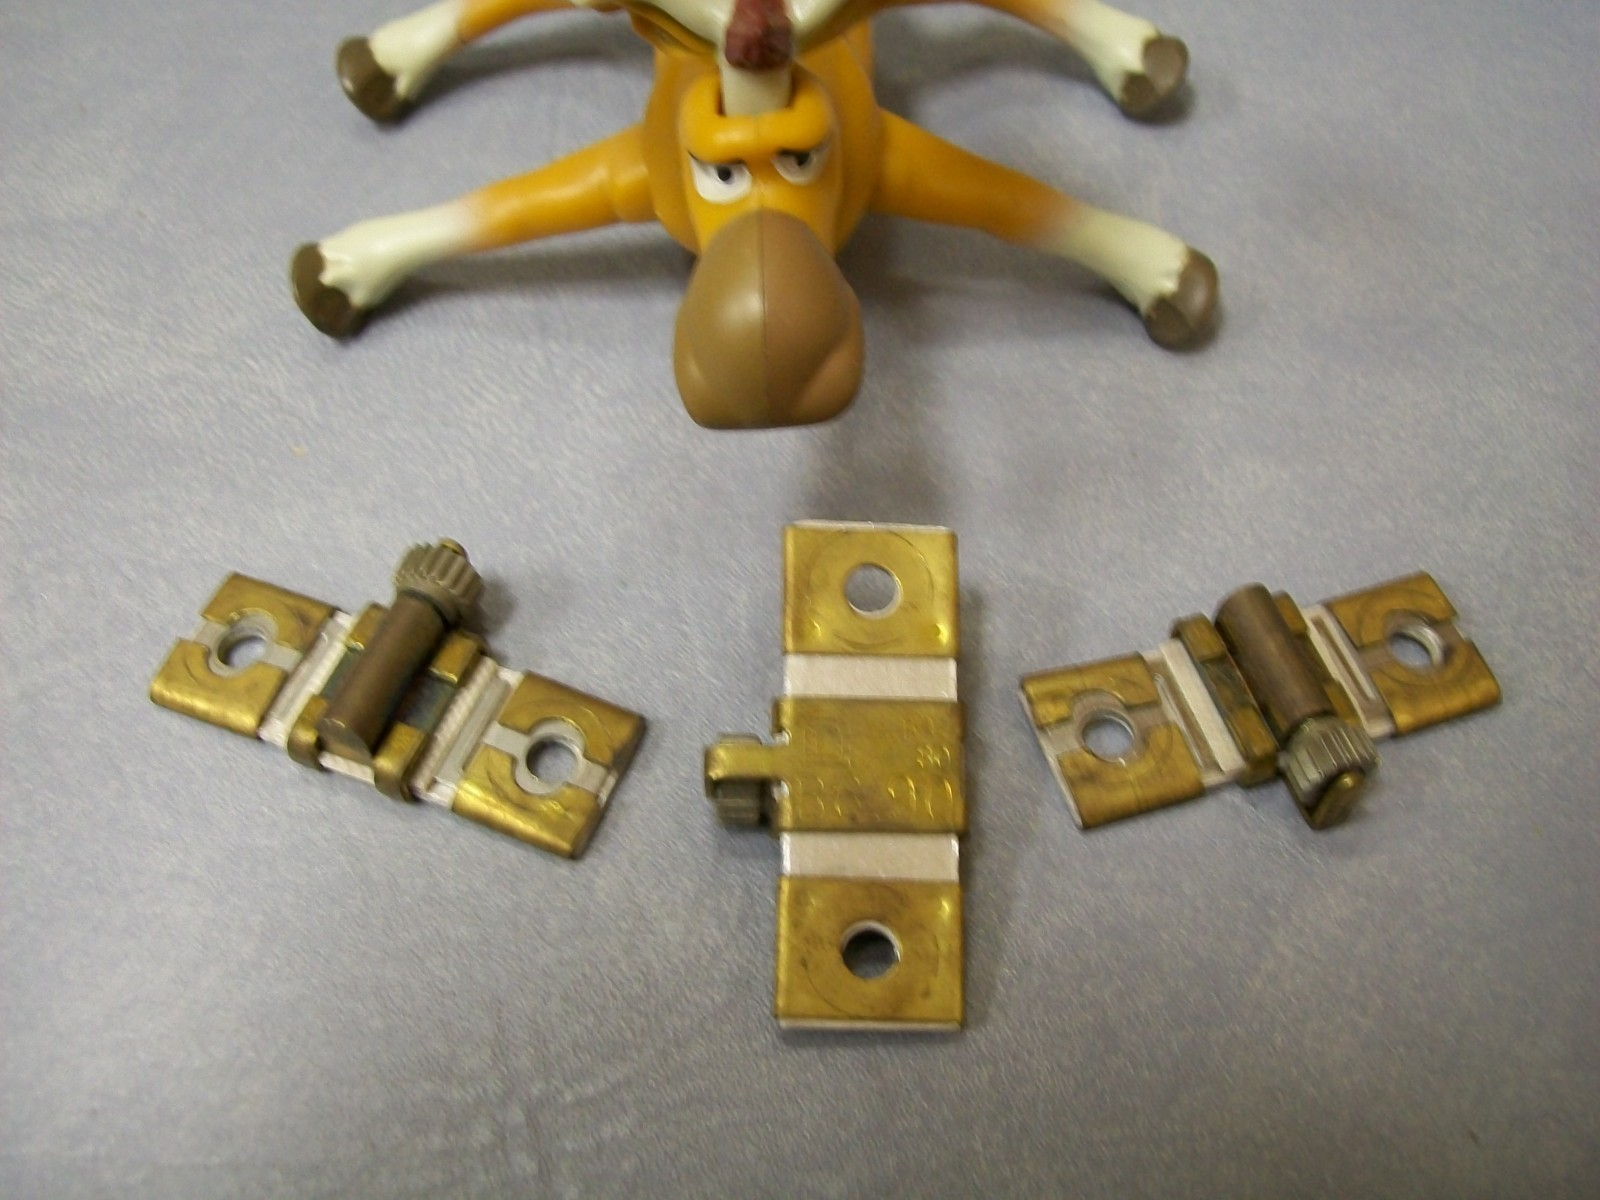 Square D Relay 138 Listings Qob115 Bolt On Circuit Breaker 1pole 120vac 15 Amp B690 Overload Thermal Unit Lot Of 3 4499